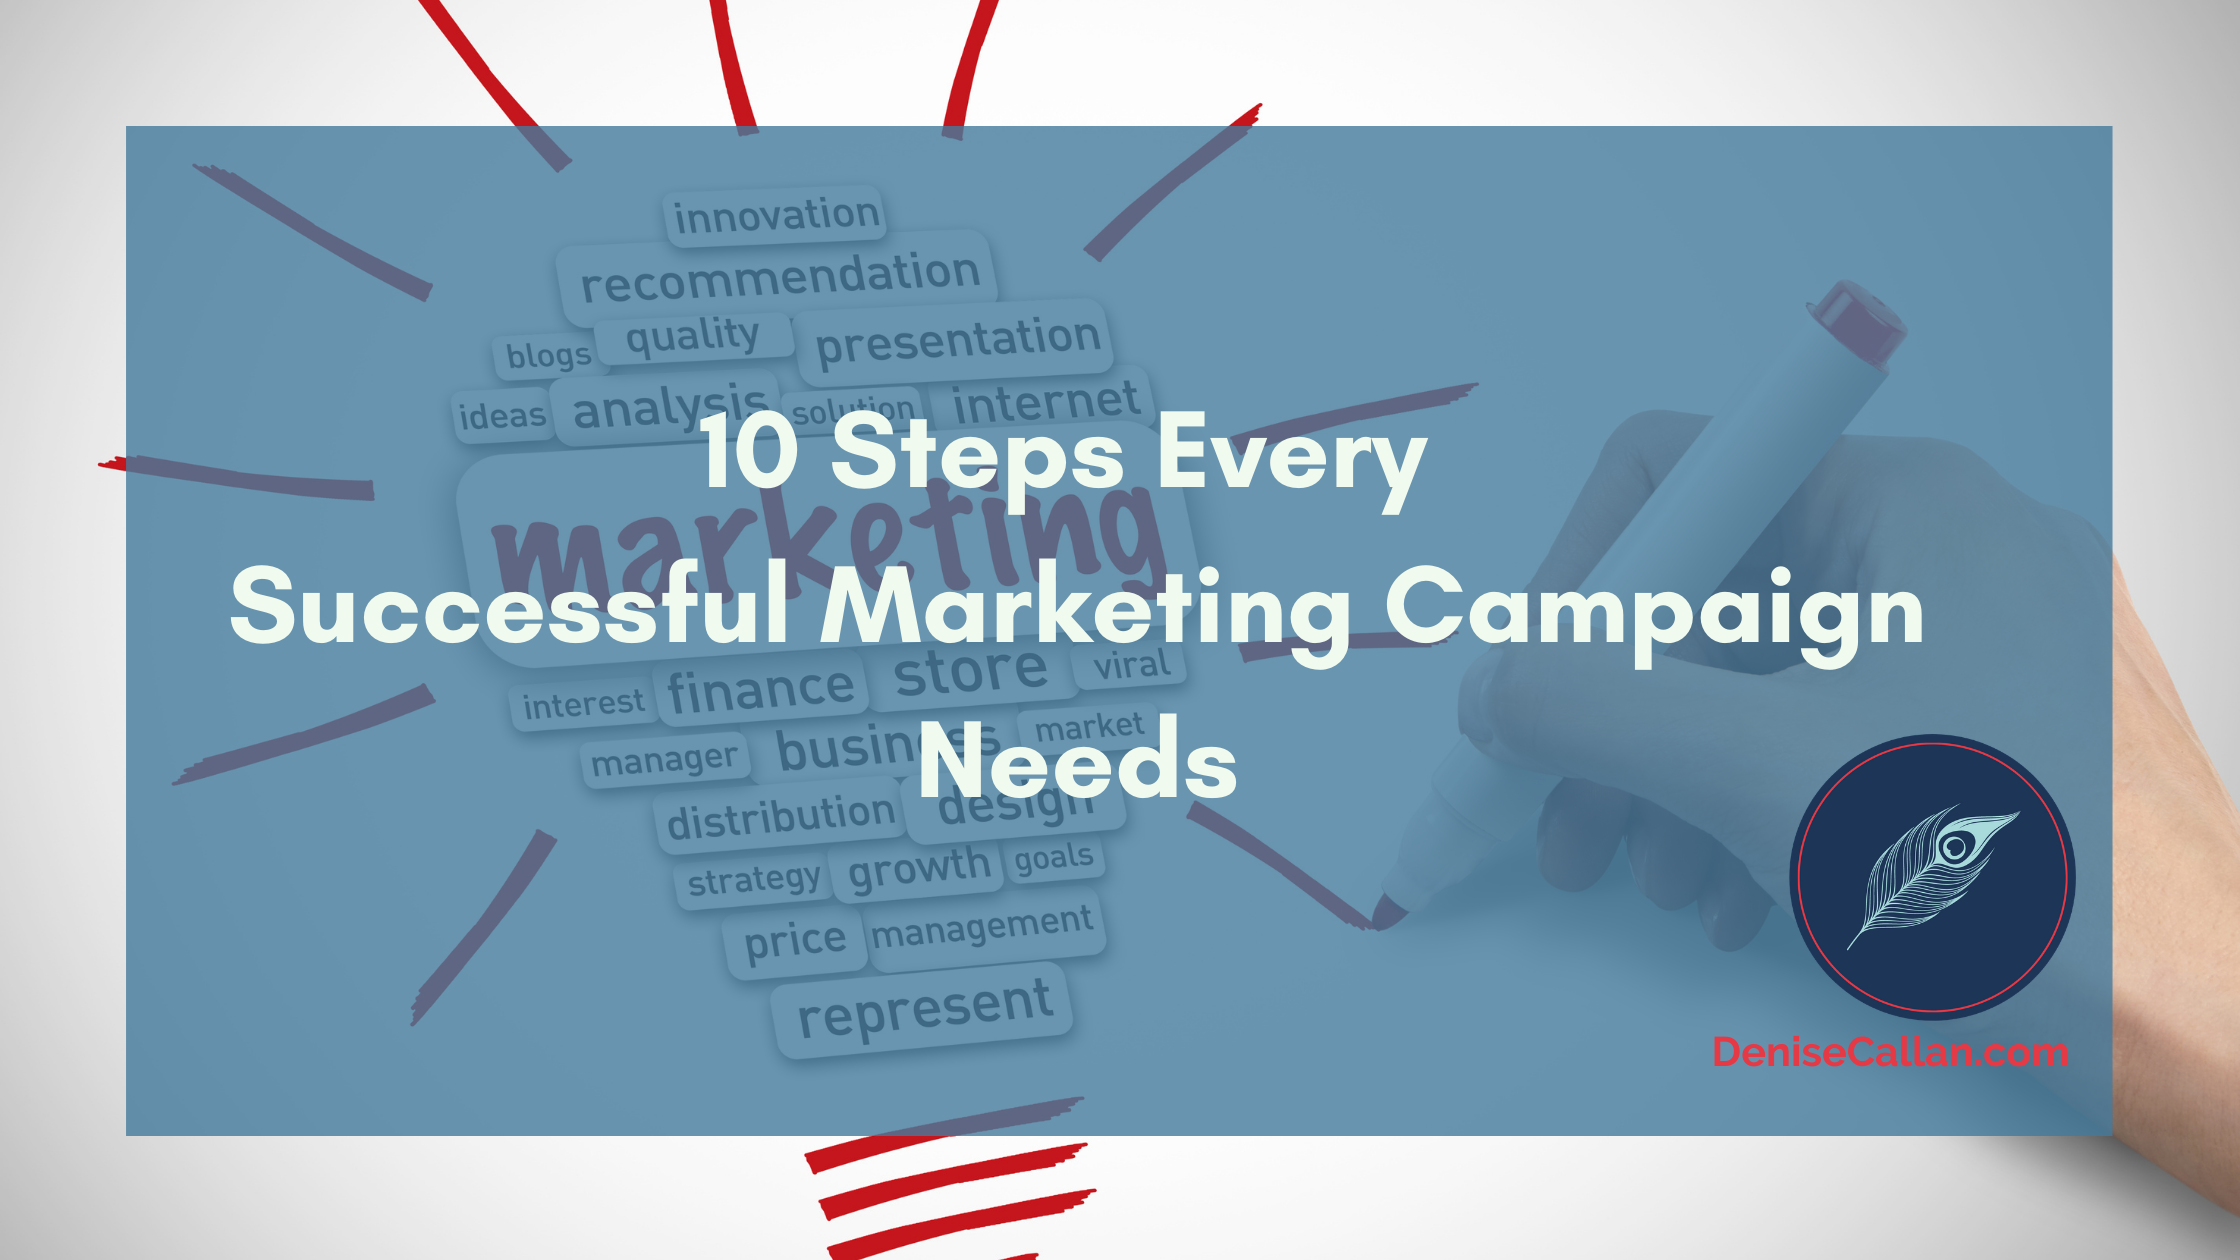 10 Steps Every Successful Marketing Campaign Needs